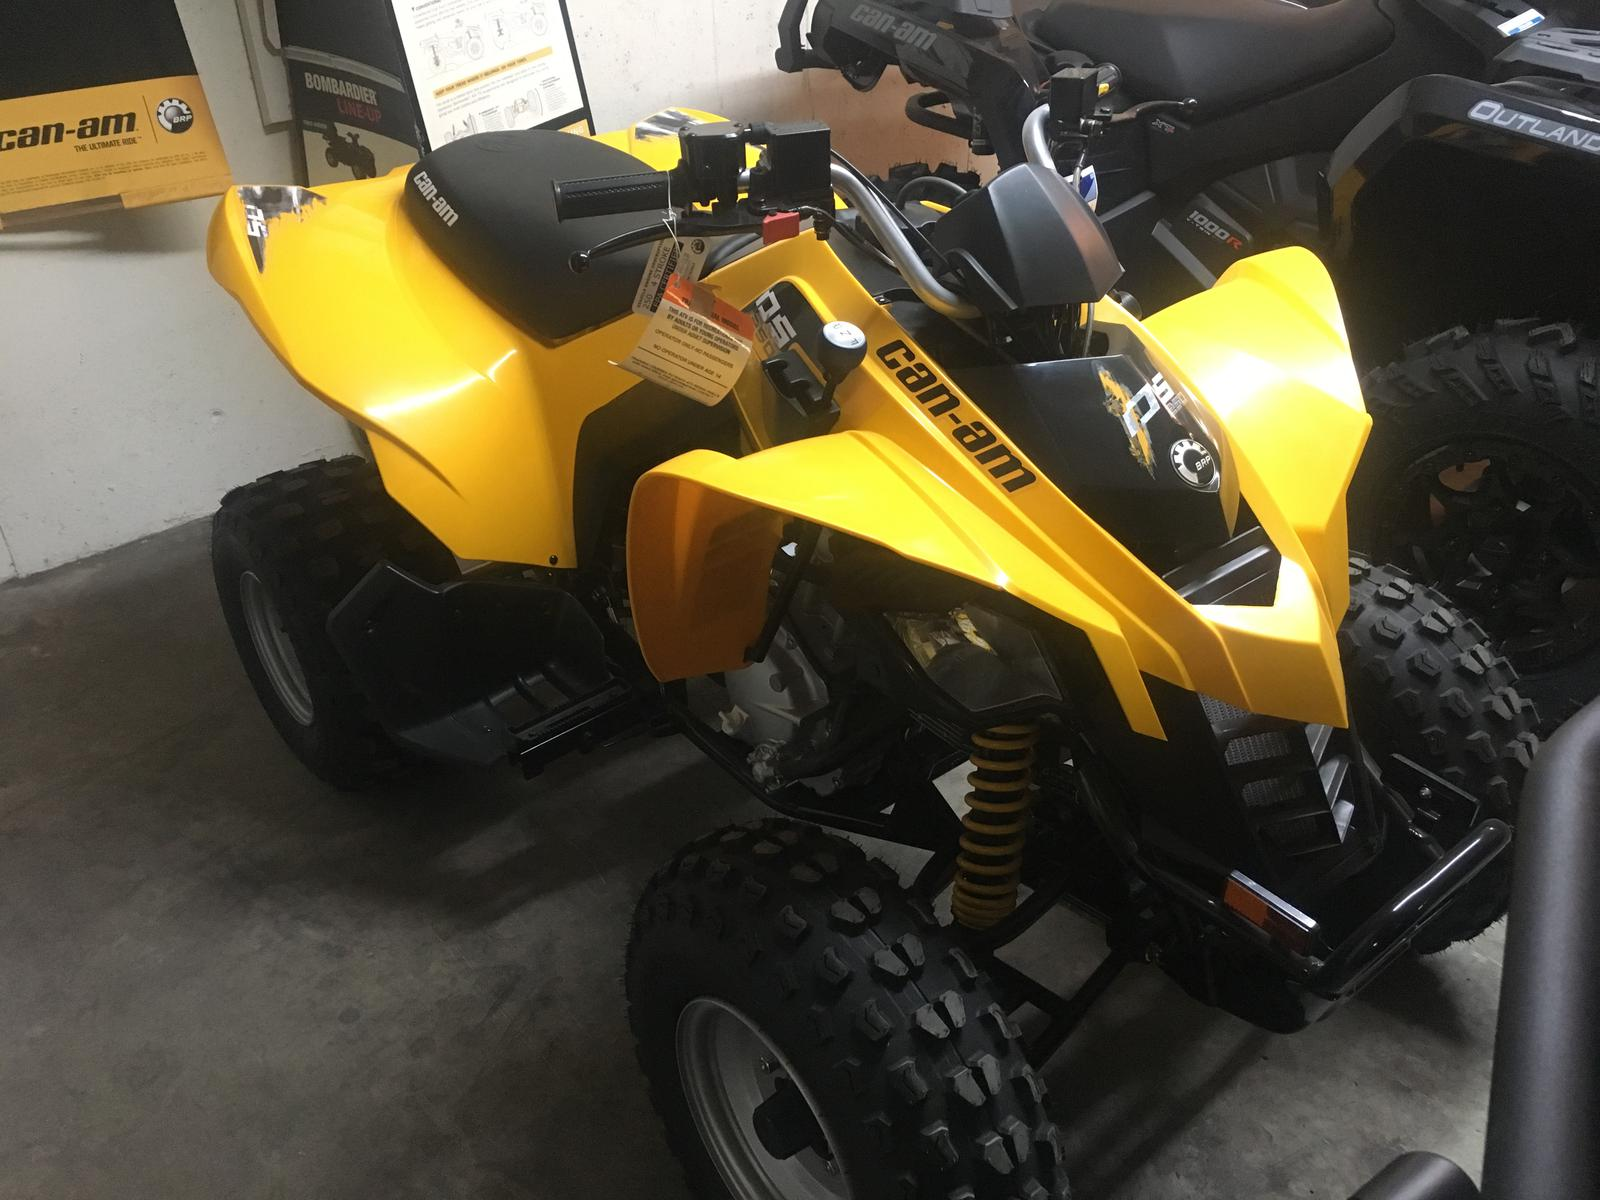 2016 Can-Am DS 250 for sale in North Easton, MA. Bob's Ski-Doo ...